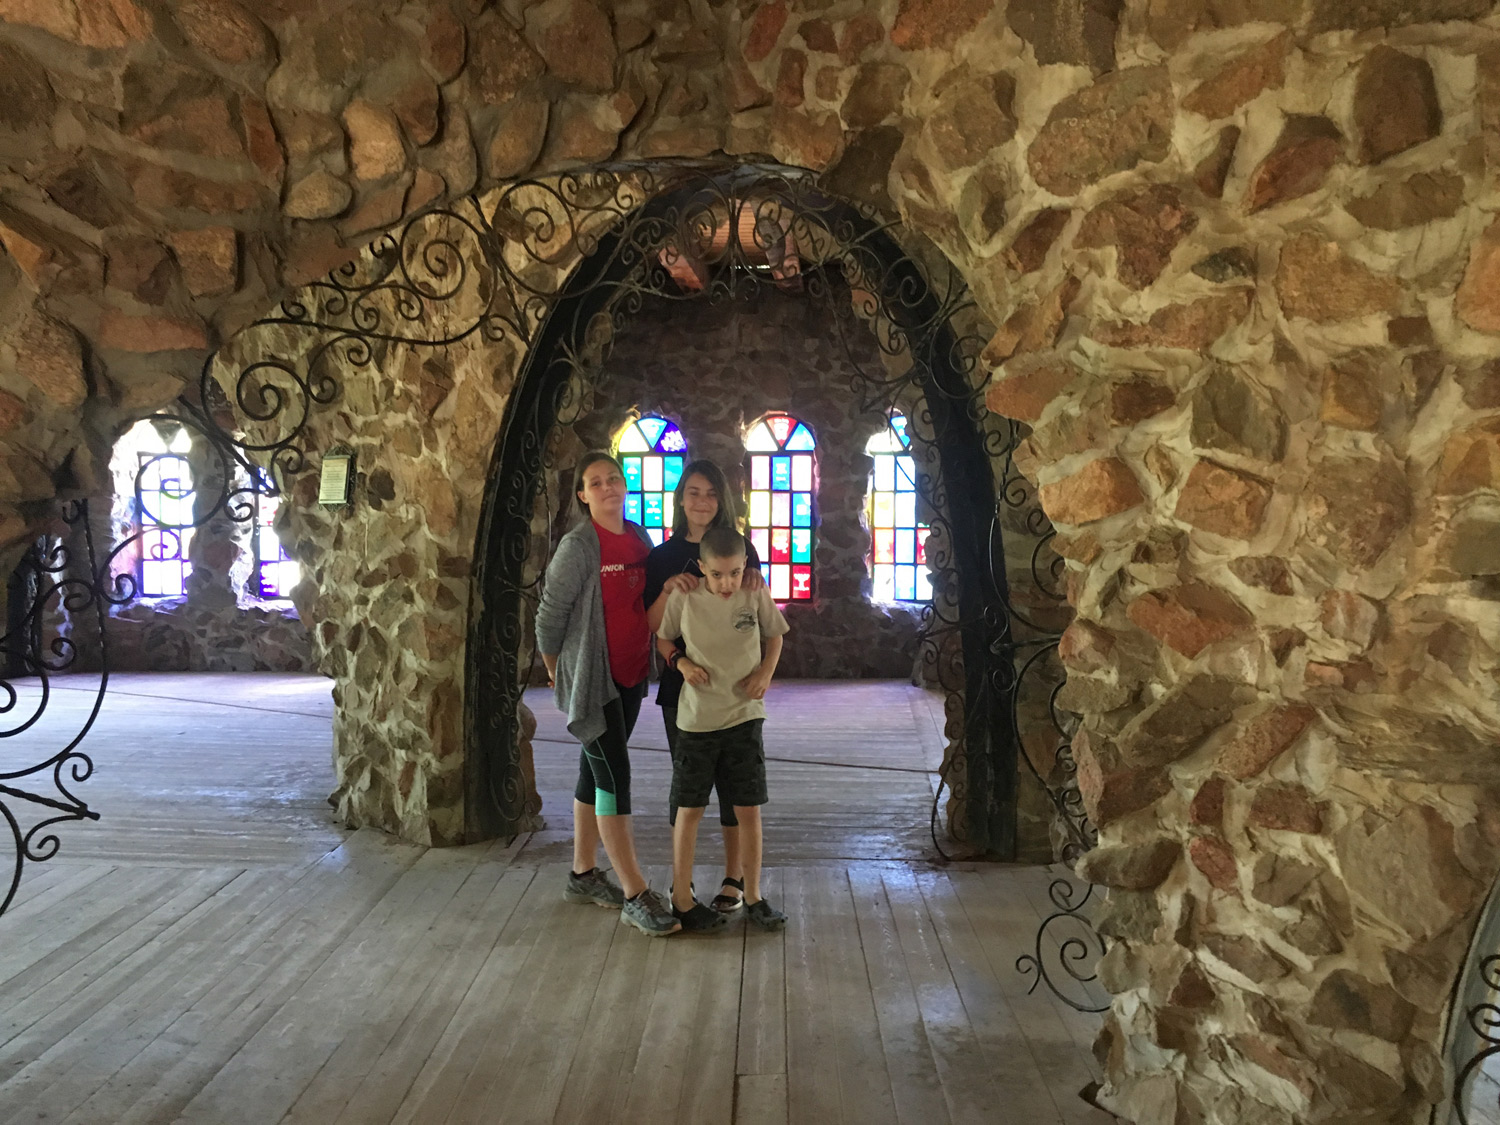 Inside the amazing Bishop Castle! The stone and iron work is impressive. And no, Ridley did not want to be in the picture :)